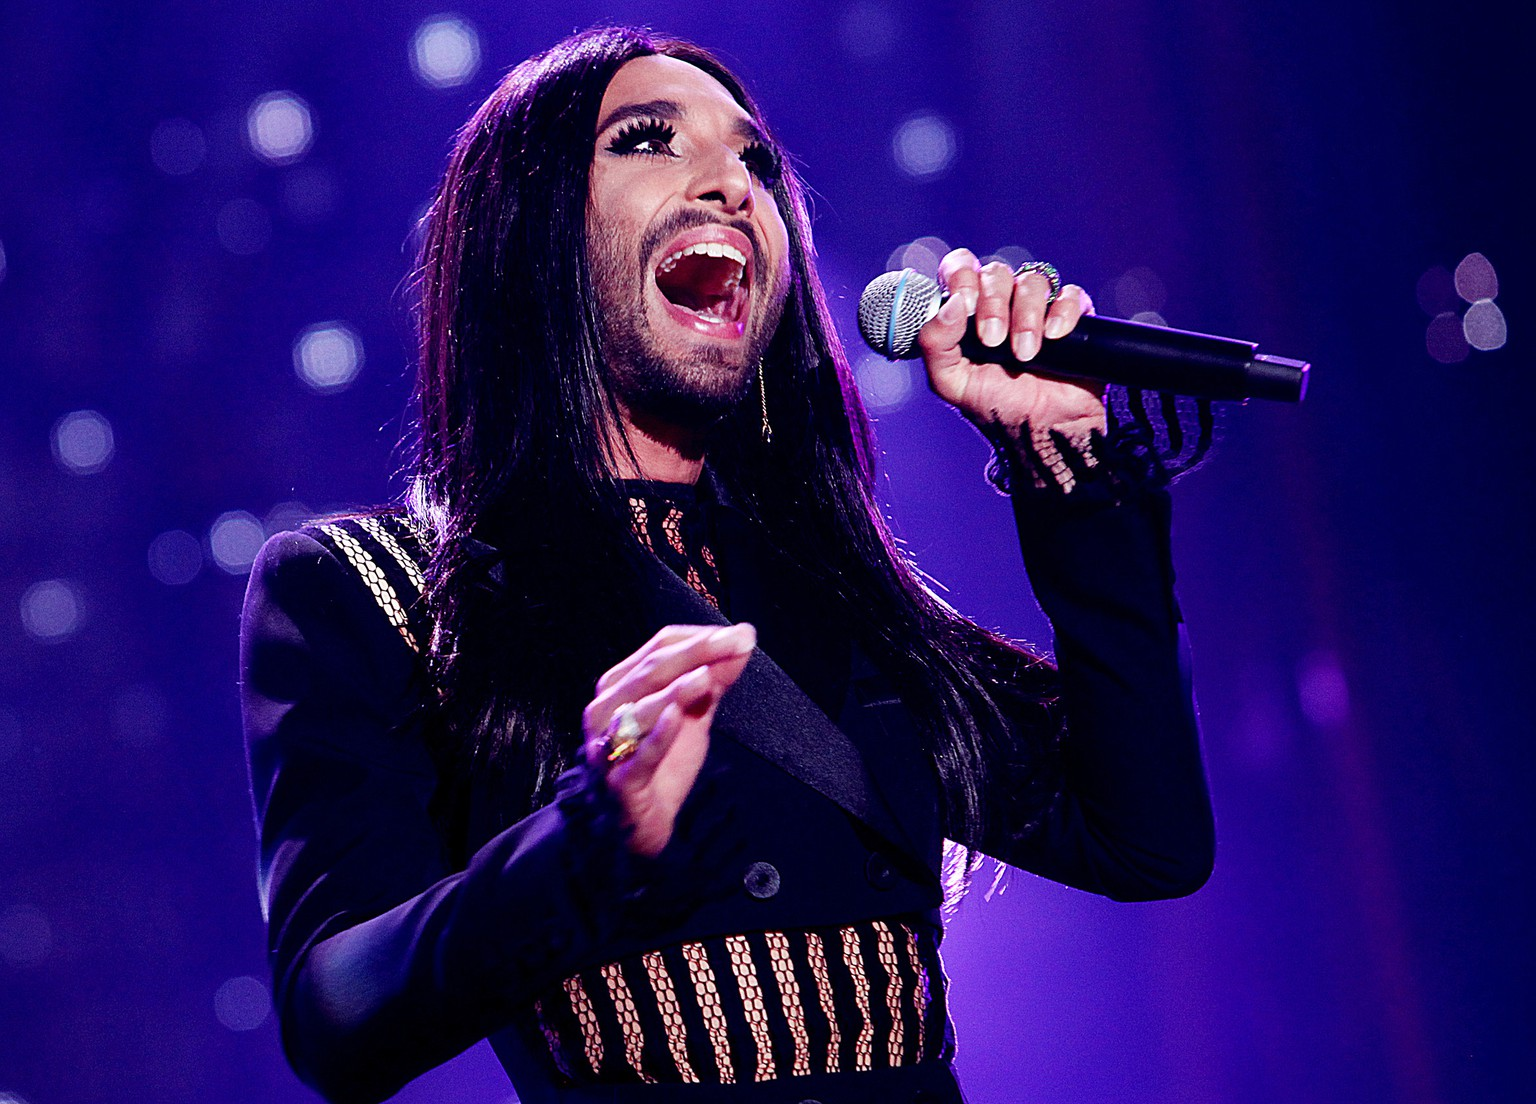 Austrian cross-dressing diva Conchita Wurst sings at a concert in Kielce, Poland, on Saturday, June 27, 2015. Local authorities banned music fans from bringing glass bottles and metal objects to the concert, as a precaution. Wurst's appearance at last year's Eurovision song contest shocked many in conservative Poland, but her talent earned her an invitation to Kielce.(AP Photo/Jarek Praszkiewicz) POLAND OUT